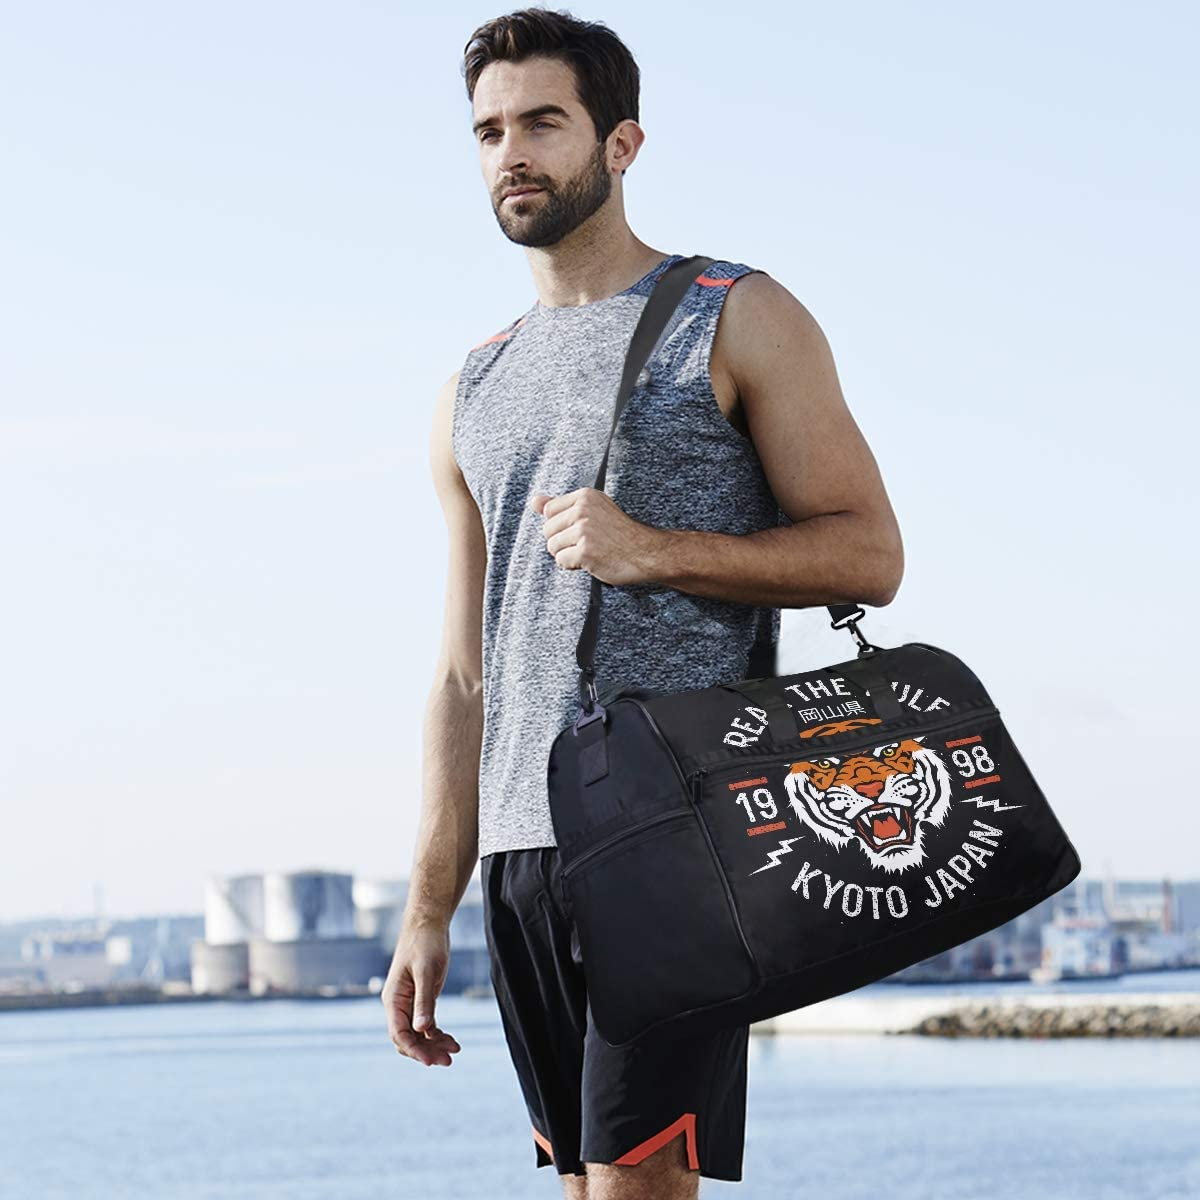 ALAZA Japanese Tiger Sports Gym Duffel Bag Travel Luggage Handbag Shoulder Bag with Shoes Compartment for Men Women